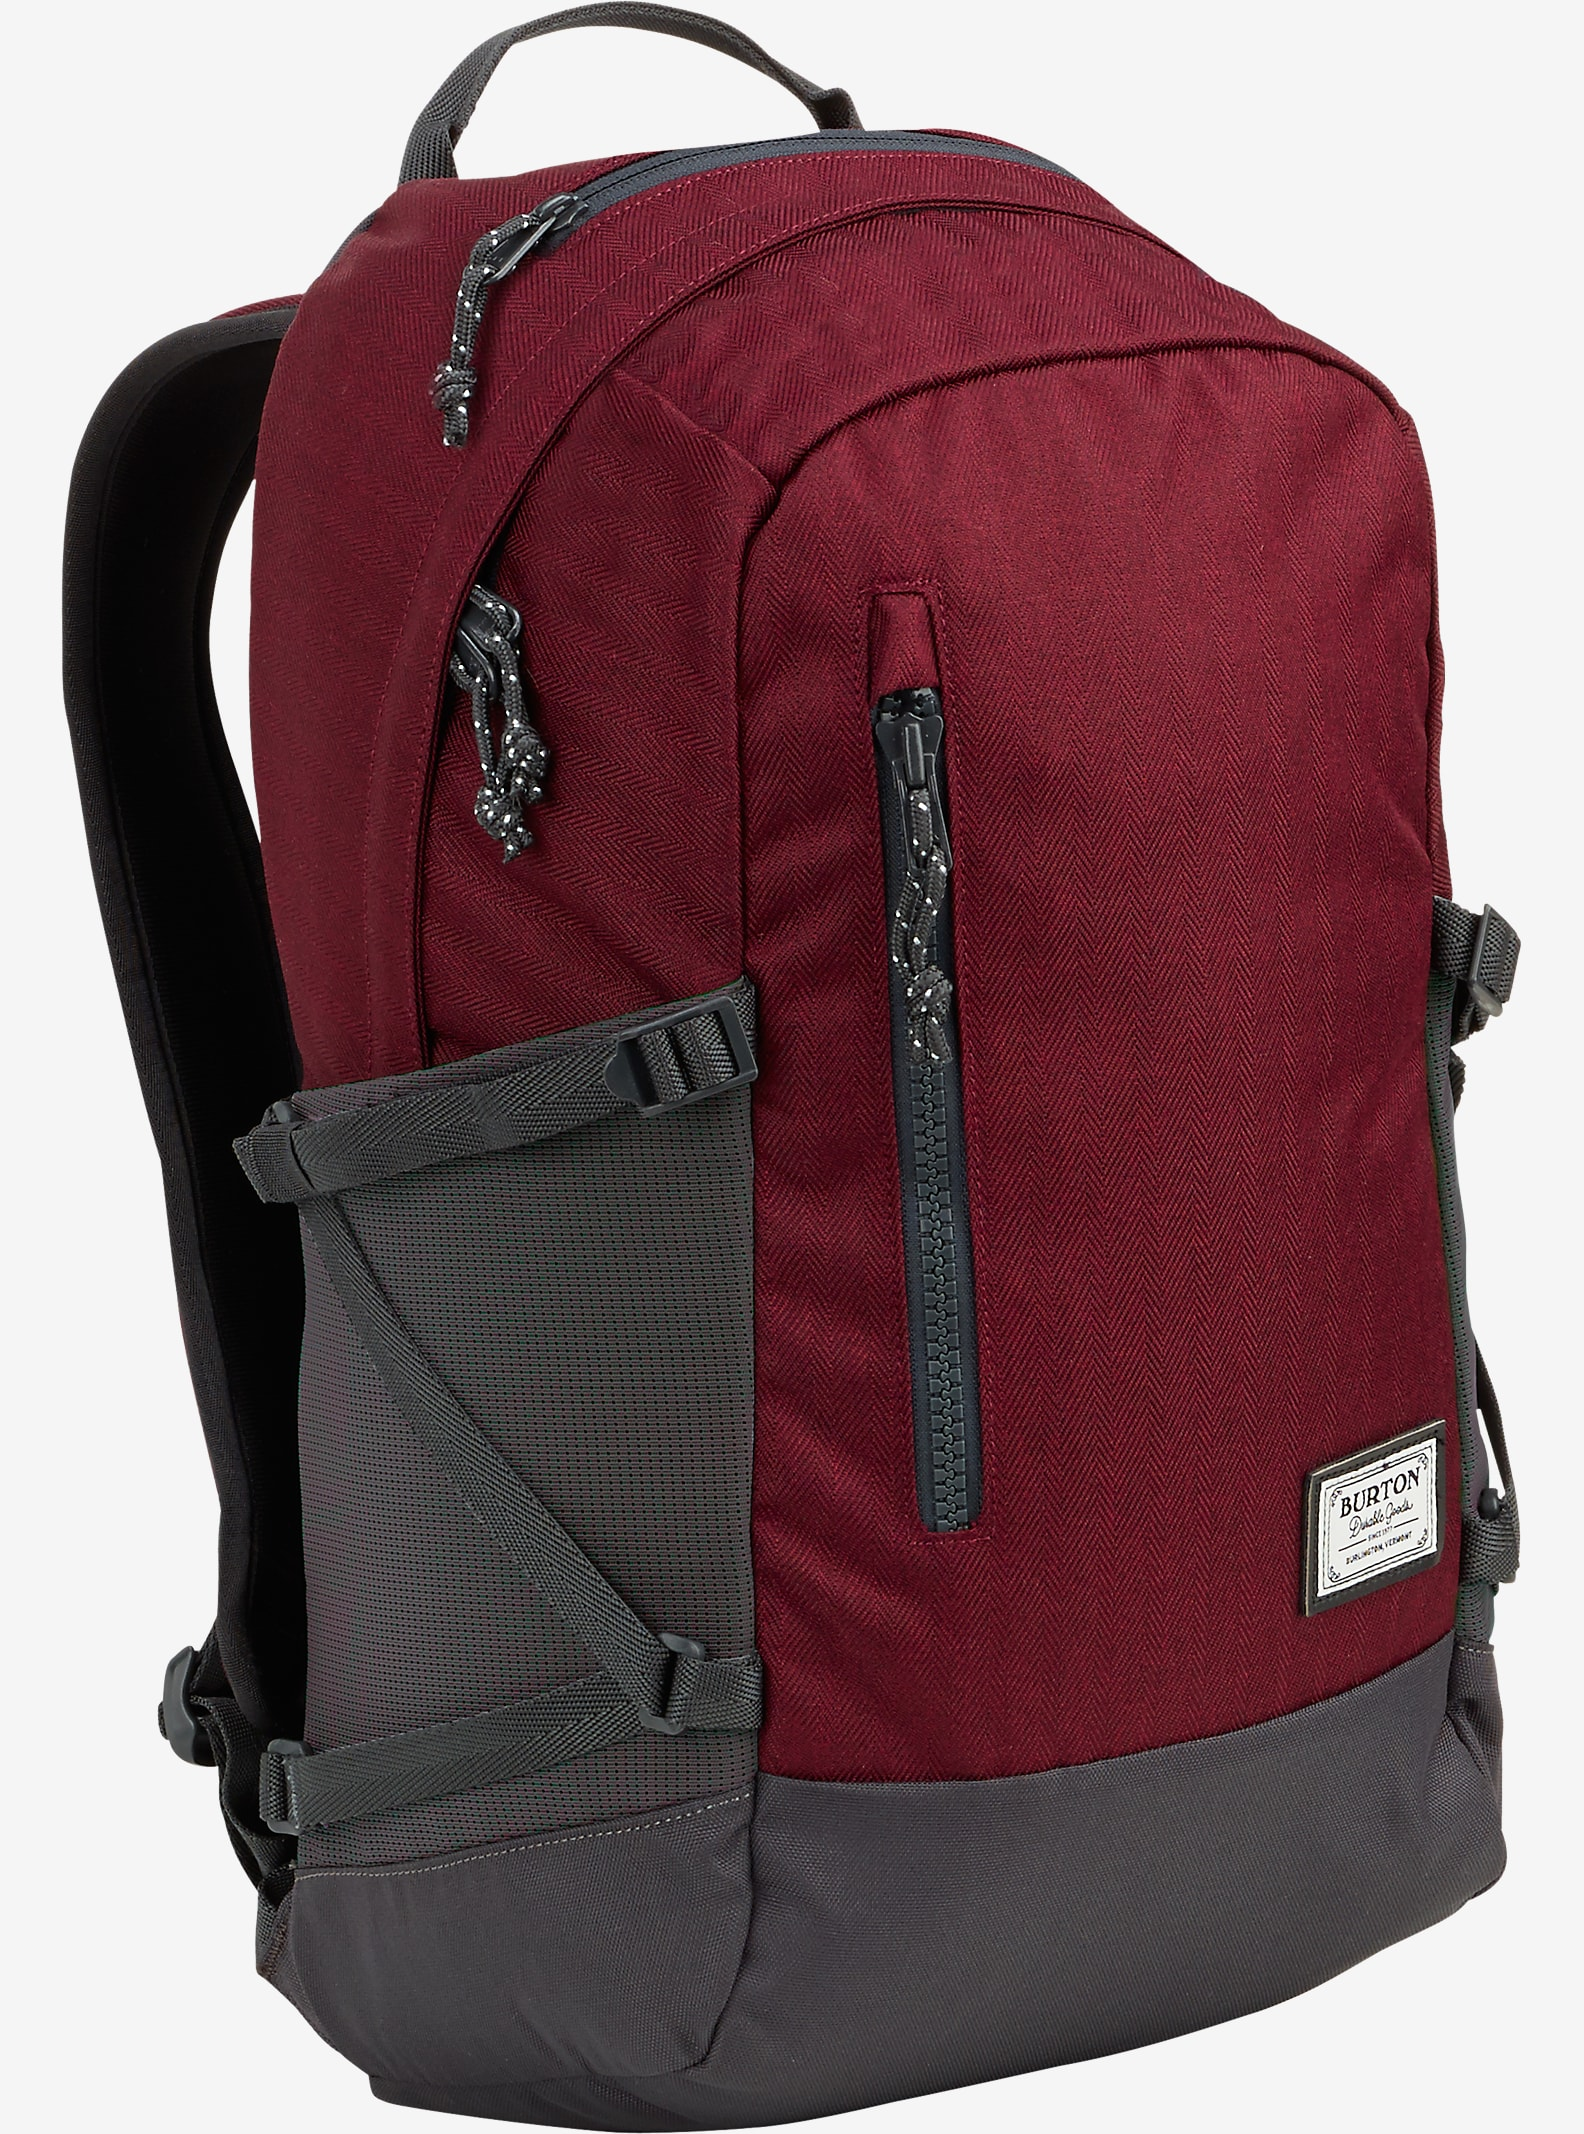 Burton Prospect Backpack shown in Zinfandel Heringbone